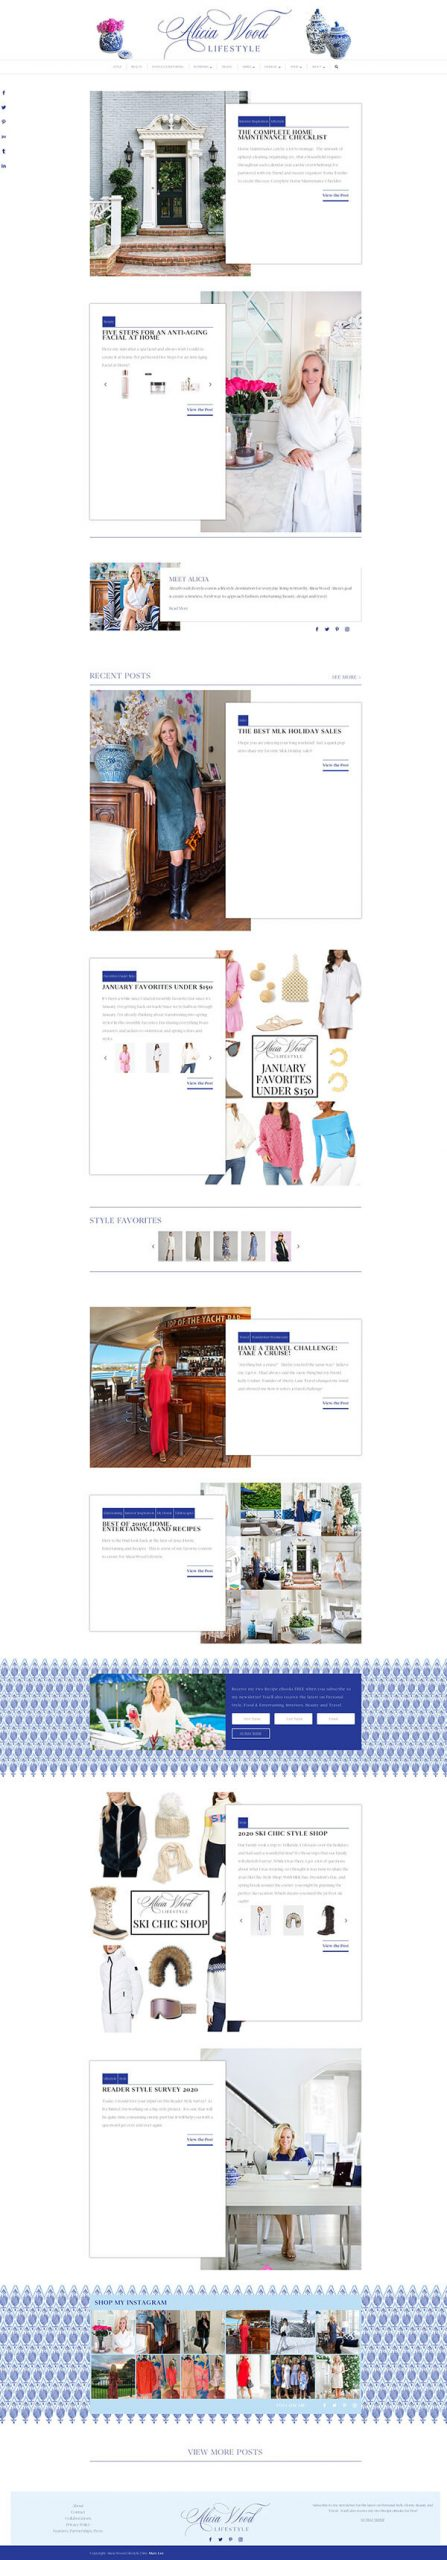 Alicia Wood Lifestyle website